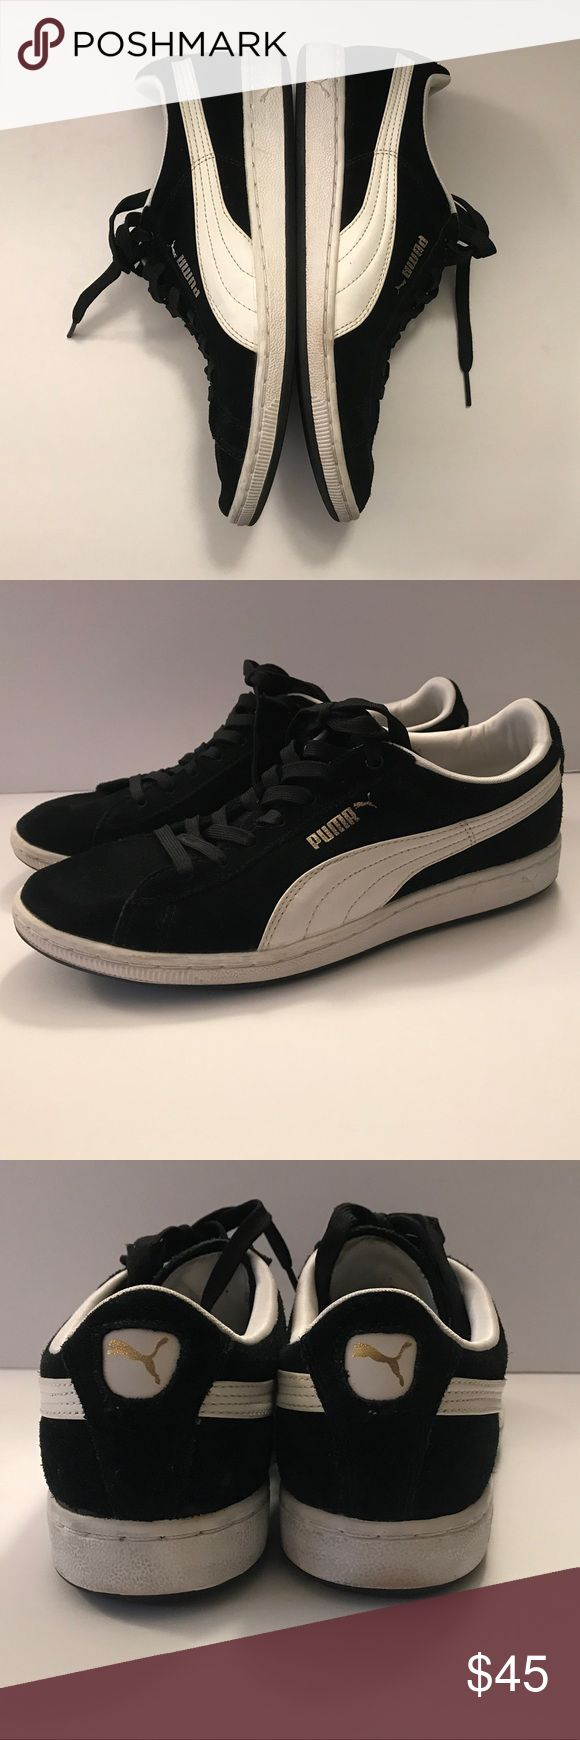 Puma Suede Black with White Leather Near new condition black puma suedes with white leather swoosh. These are Size 8, super clean no tears or stains! Soles can be whitened with a magic eraser but are already super bright. Make an offer. Puma Shoes Sneakers